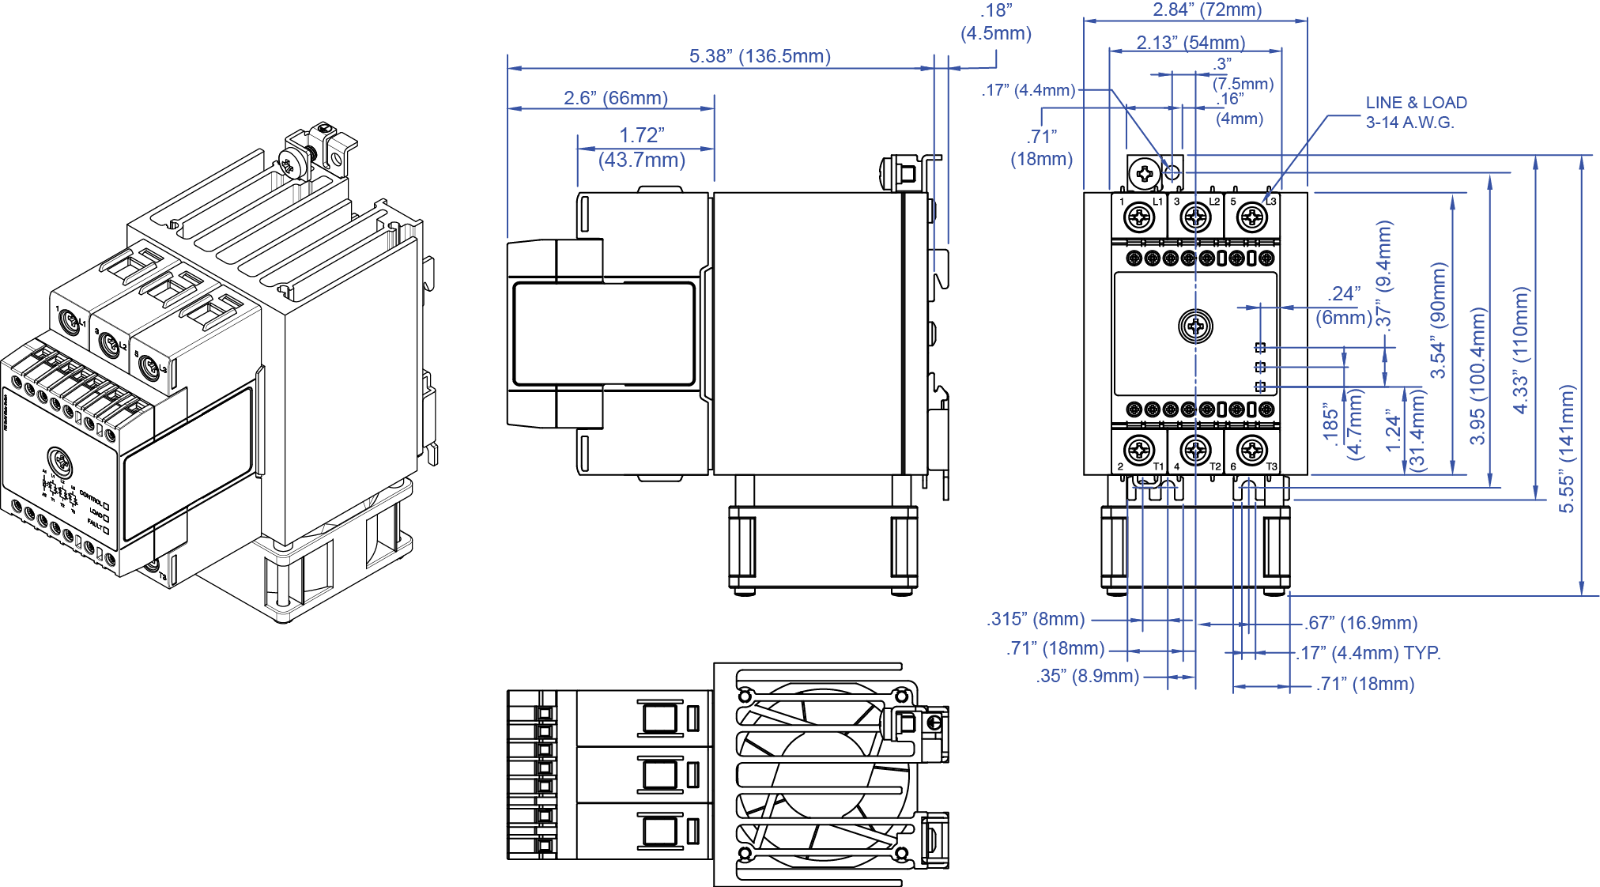 solid state relay - ssr - 3-pole - 3 phase